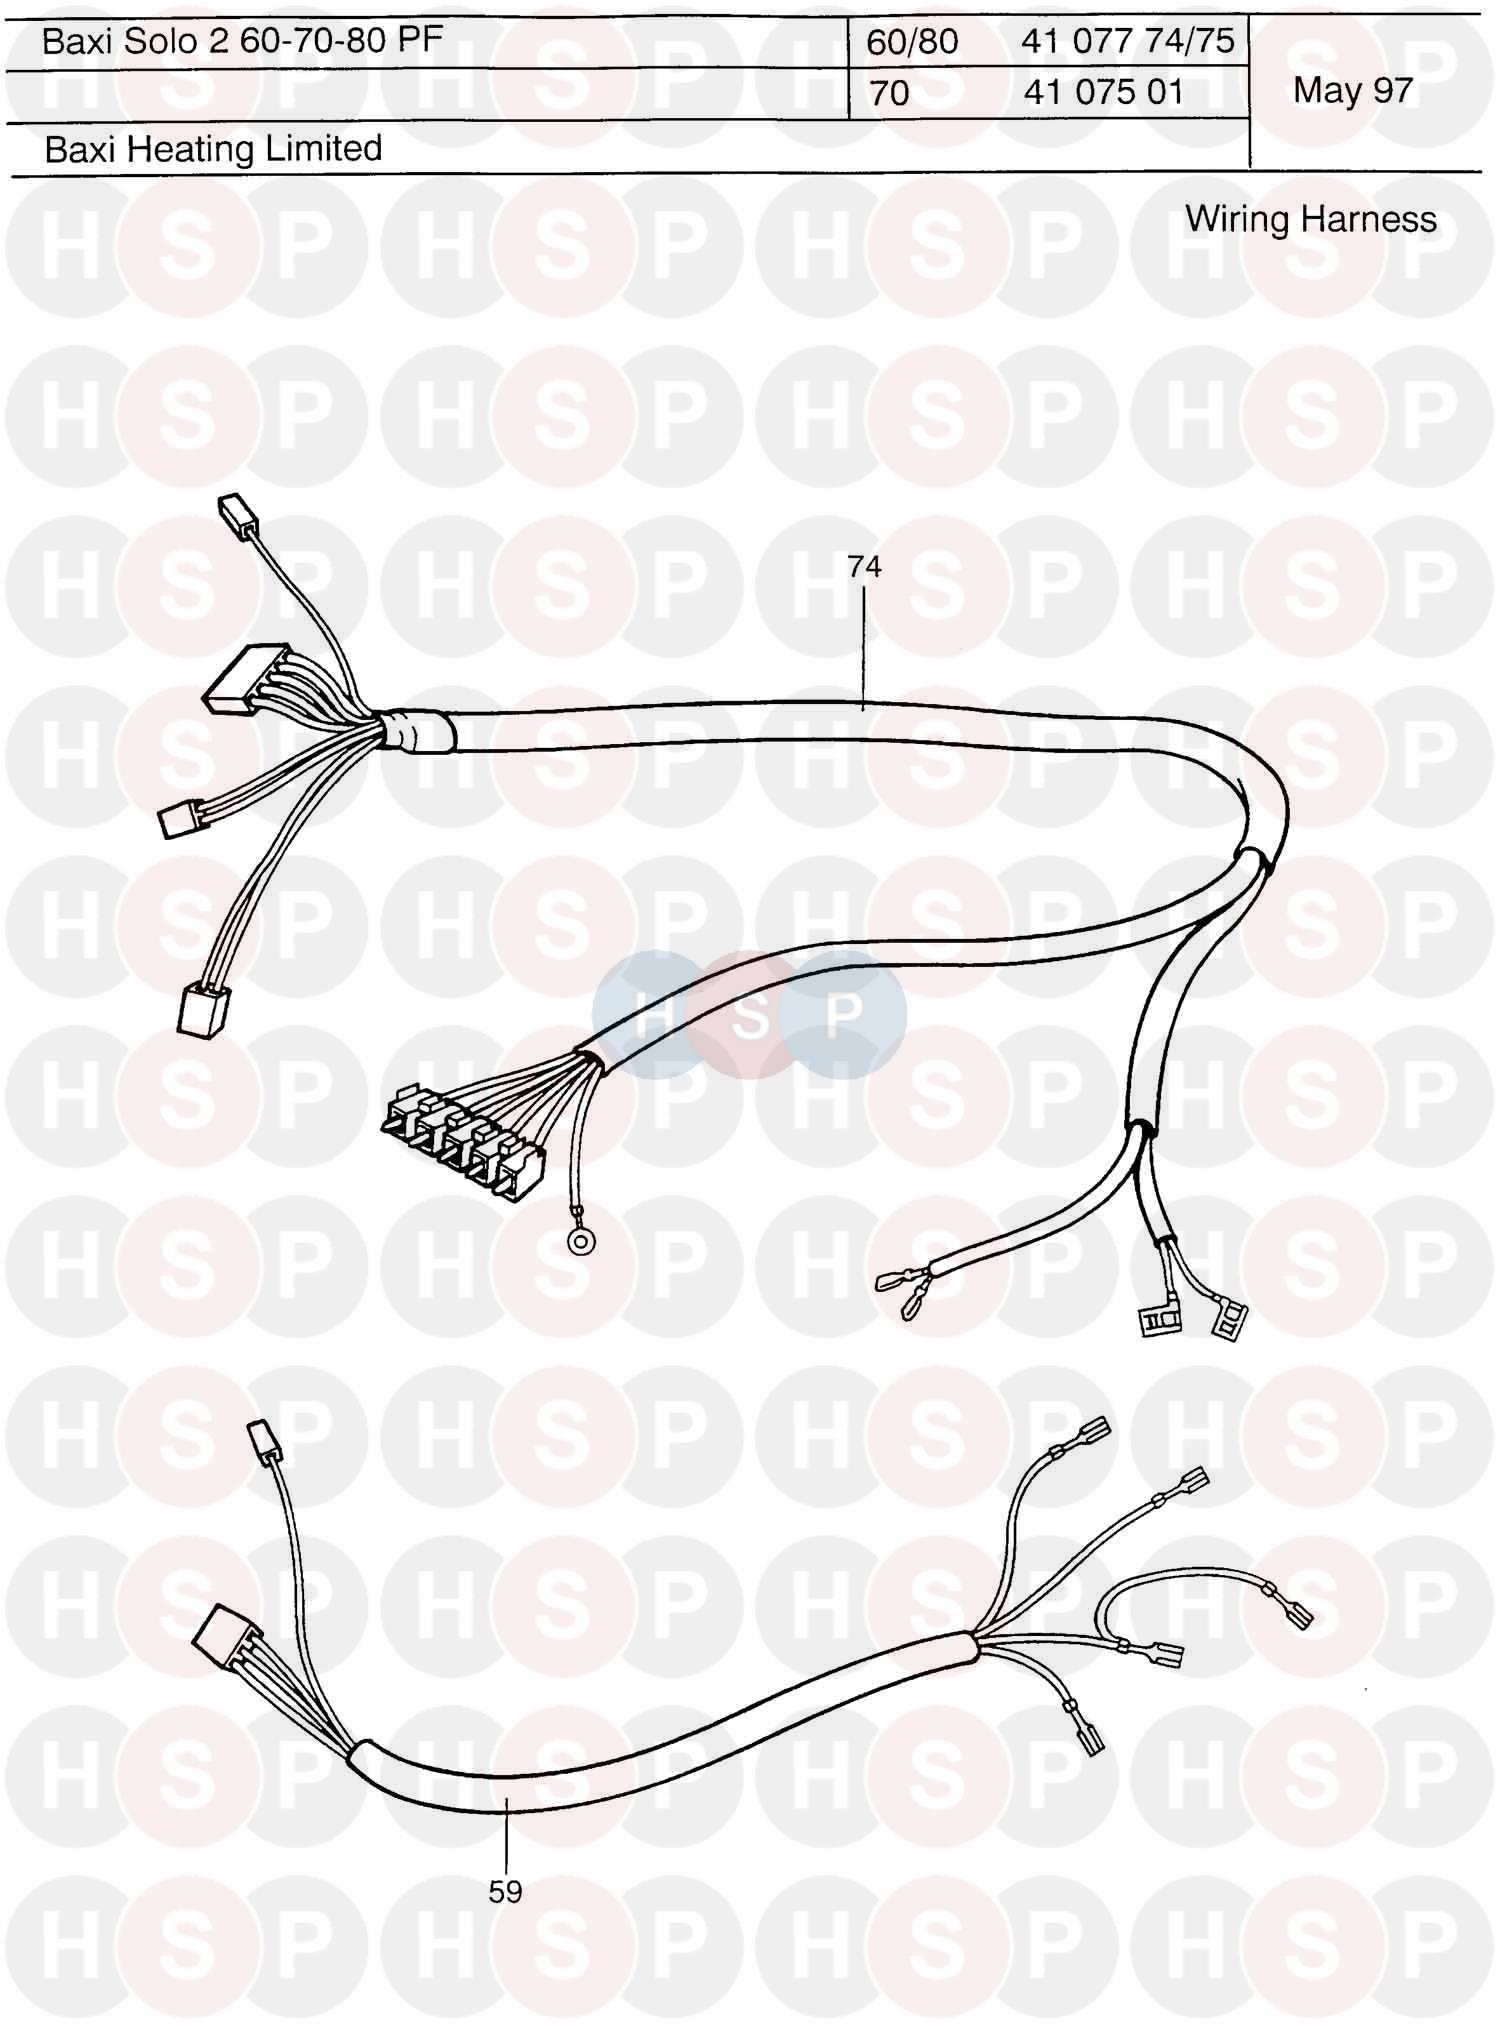 baxi solo pf 2 60  wiring harness  diagram